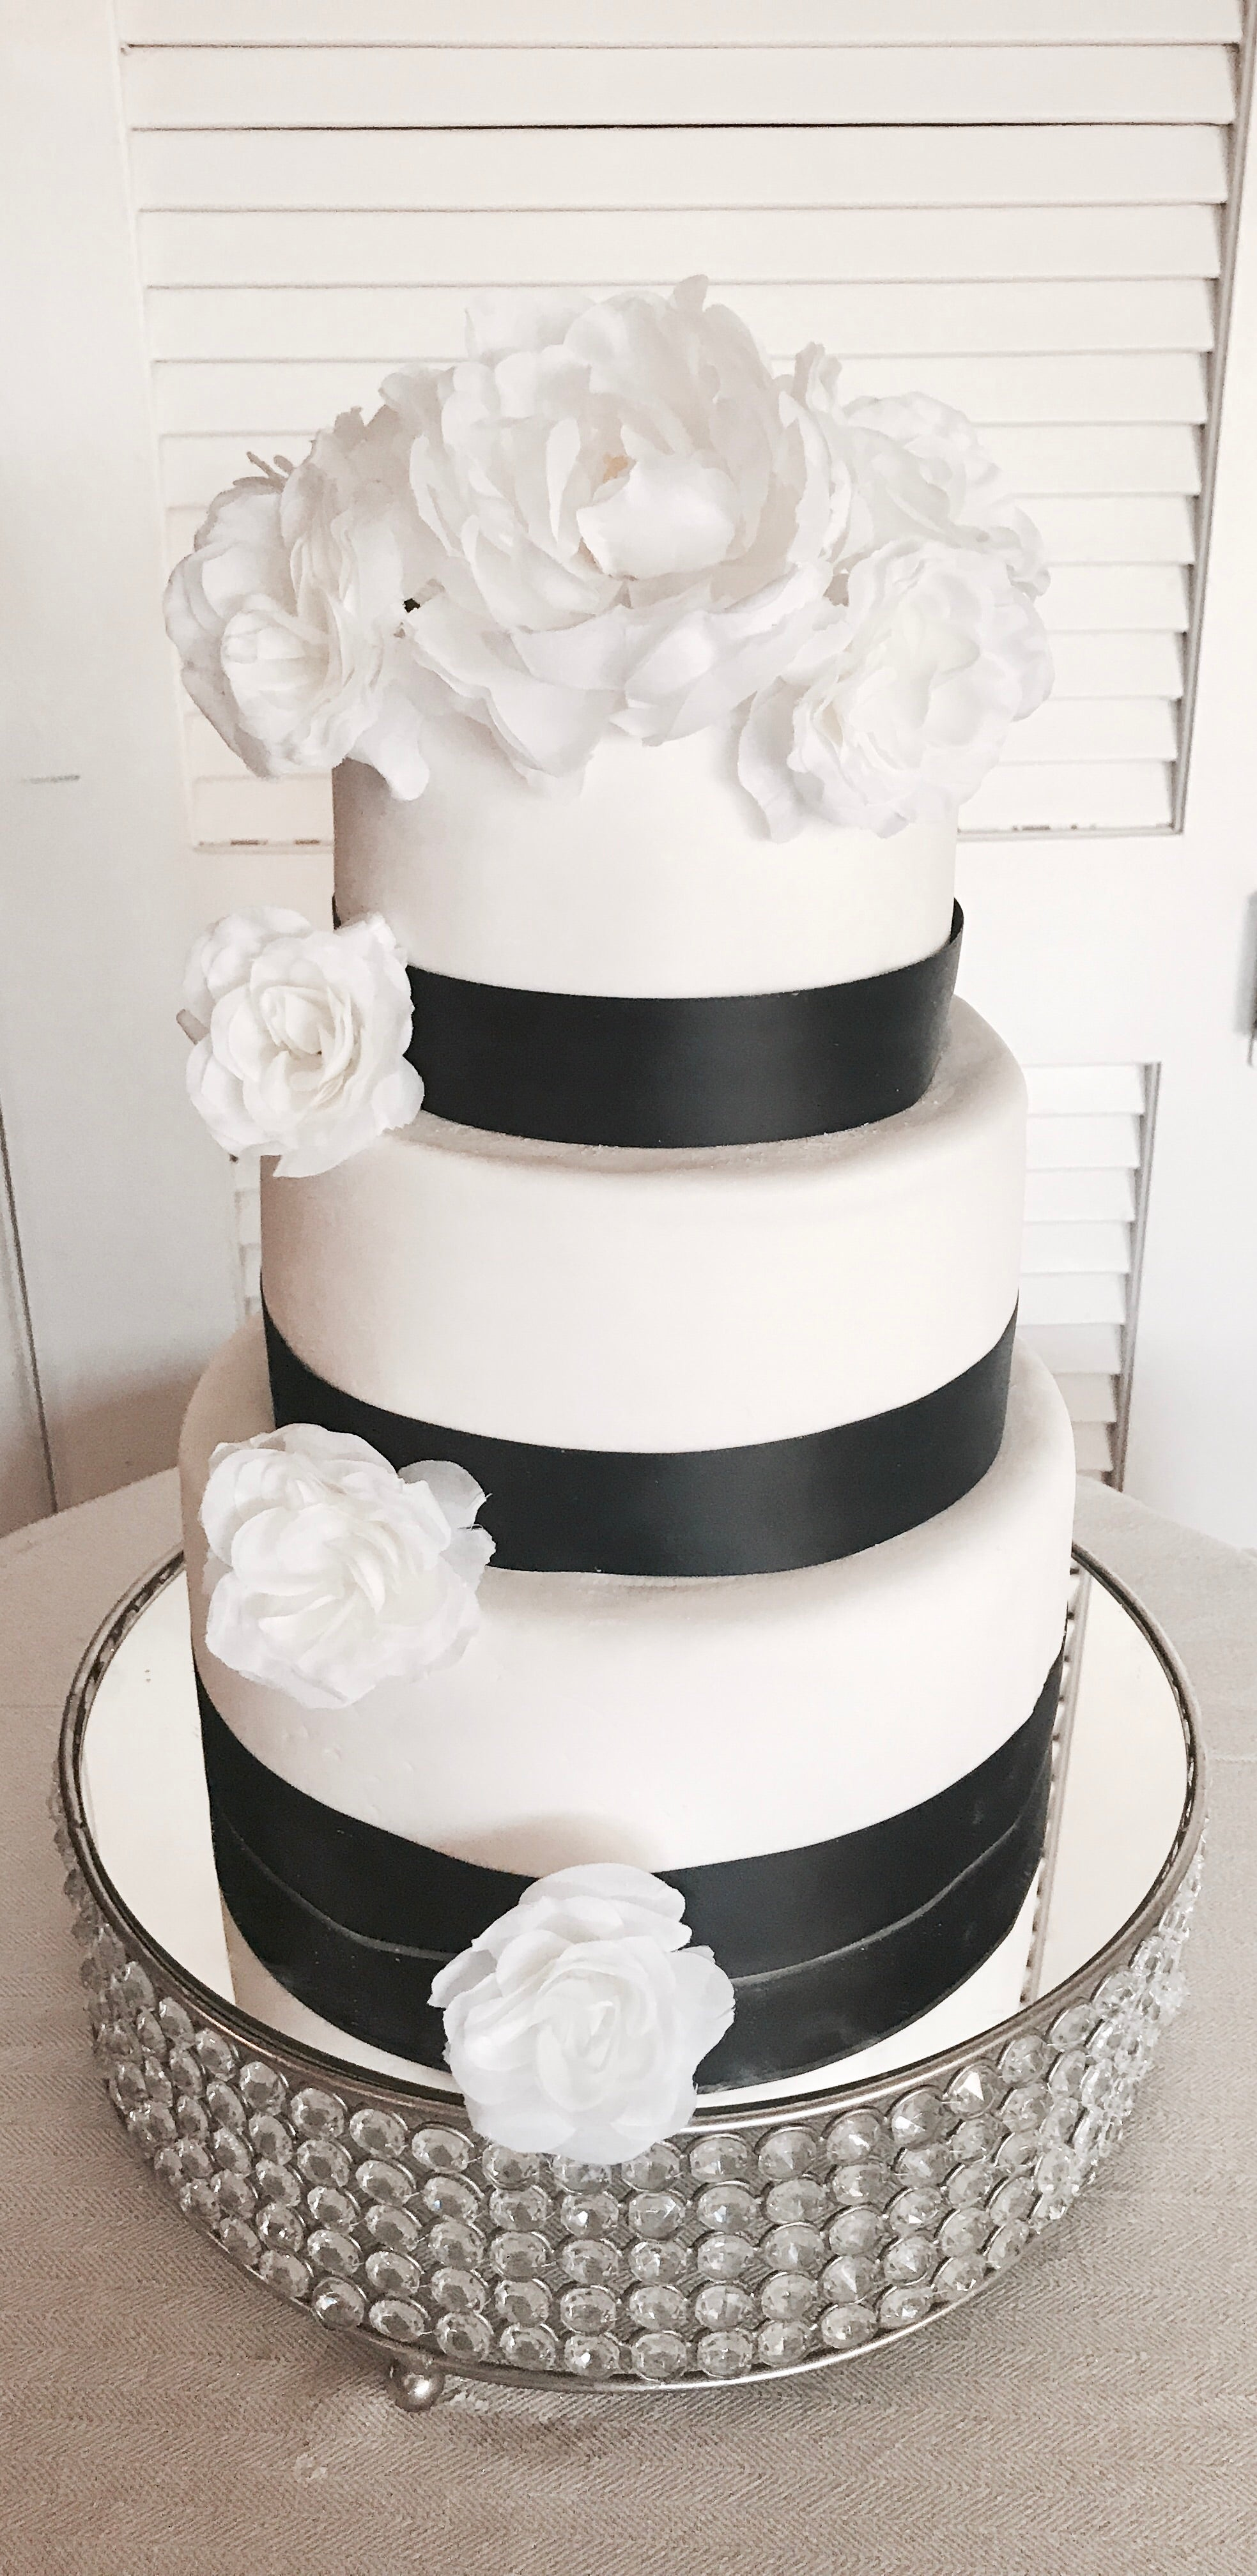 WEDDING CAKE BLACK & WHITE FLORAL